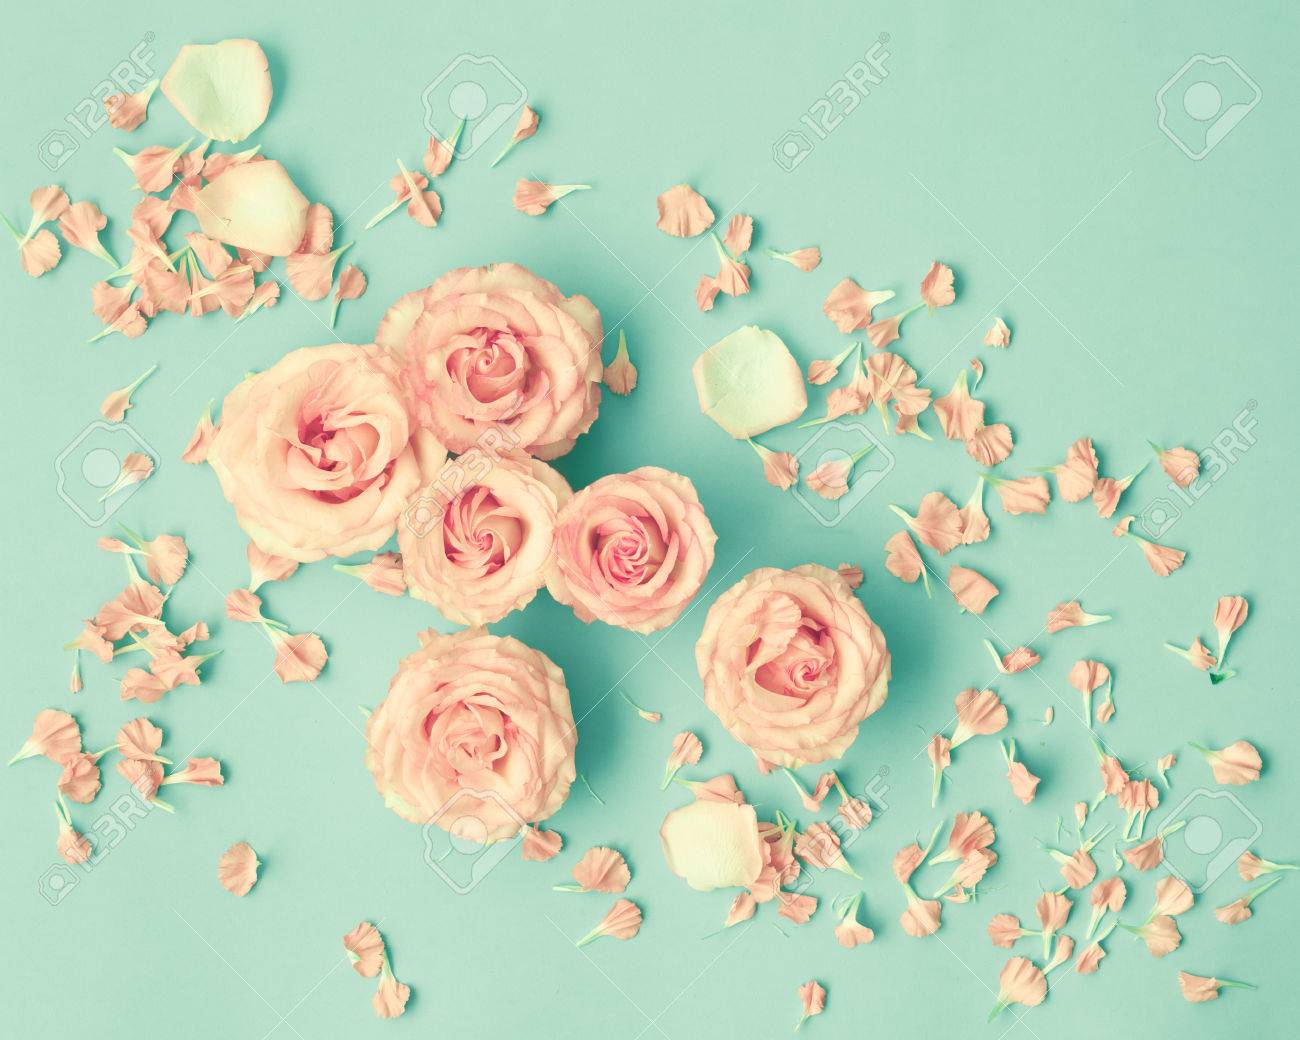 Pink Roses Over Mint Background Stock Photo Picture And Royalty